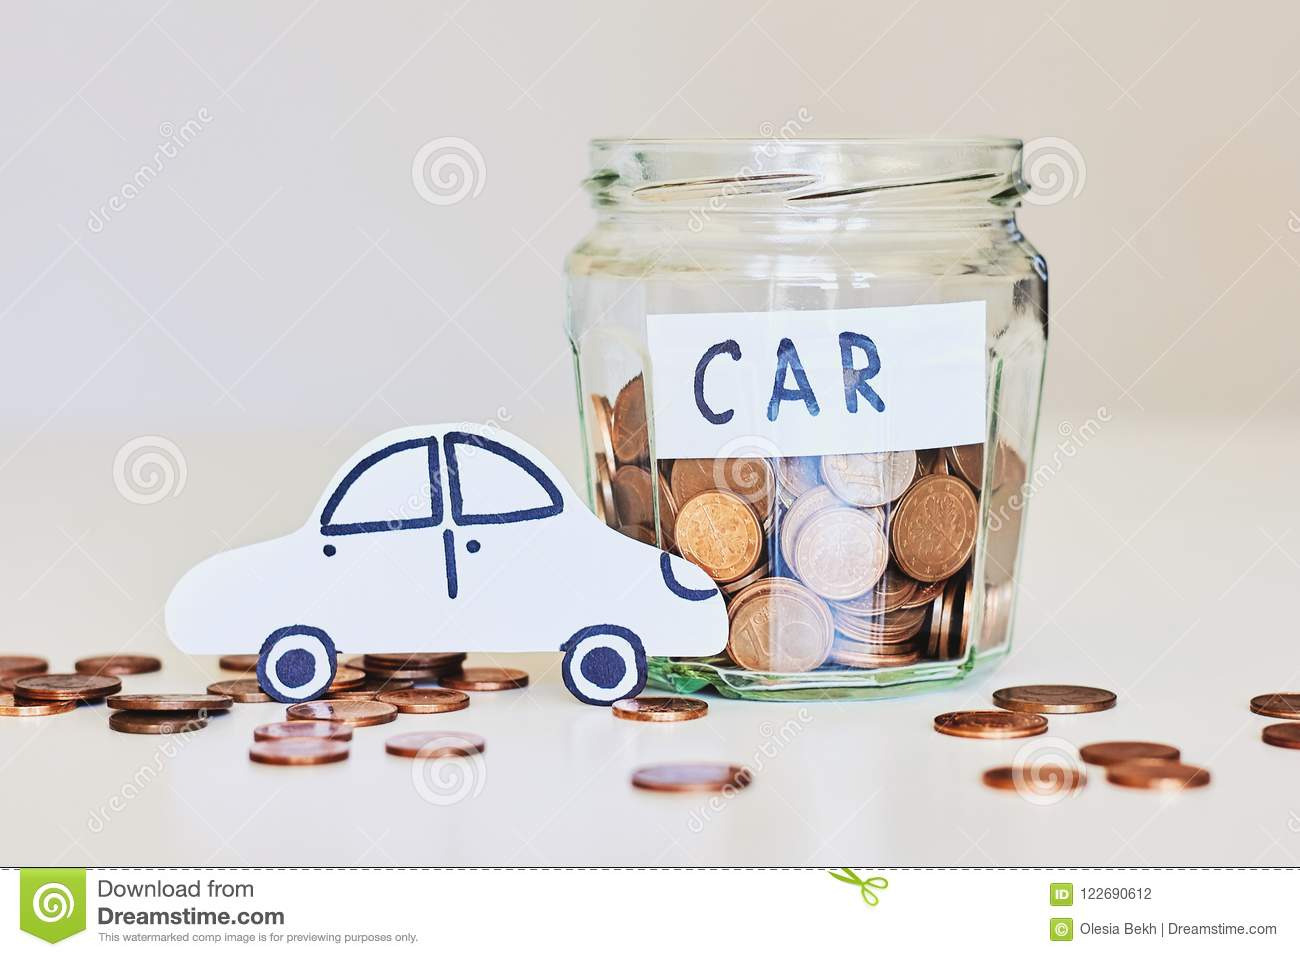 Car loan, car insurance concept. Glass jar full of coins and white paper car